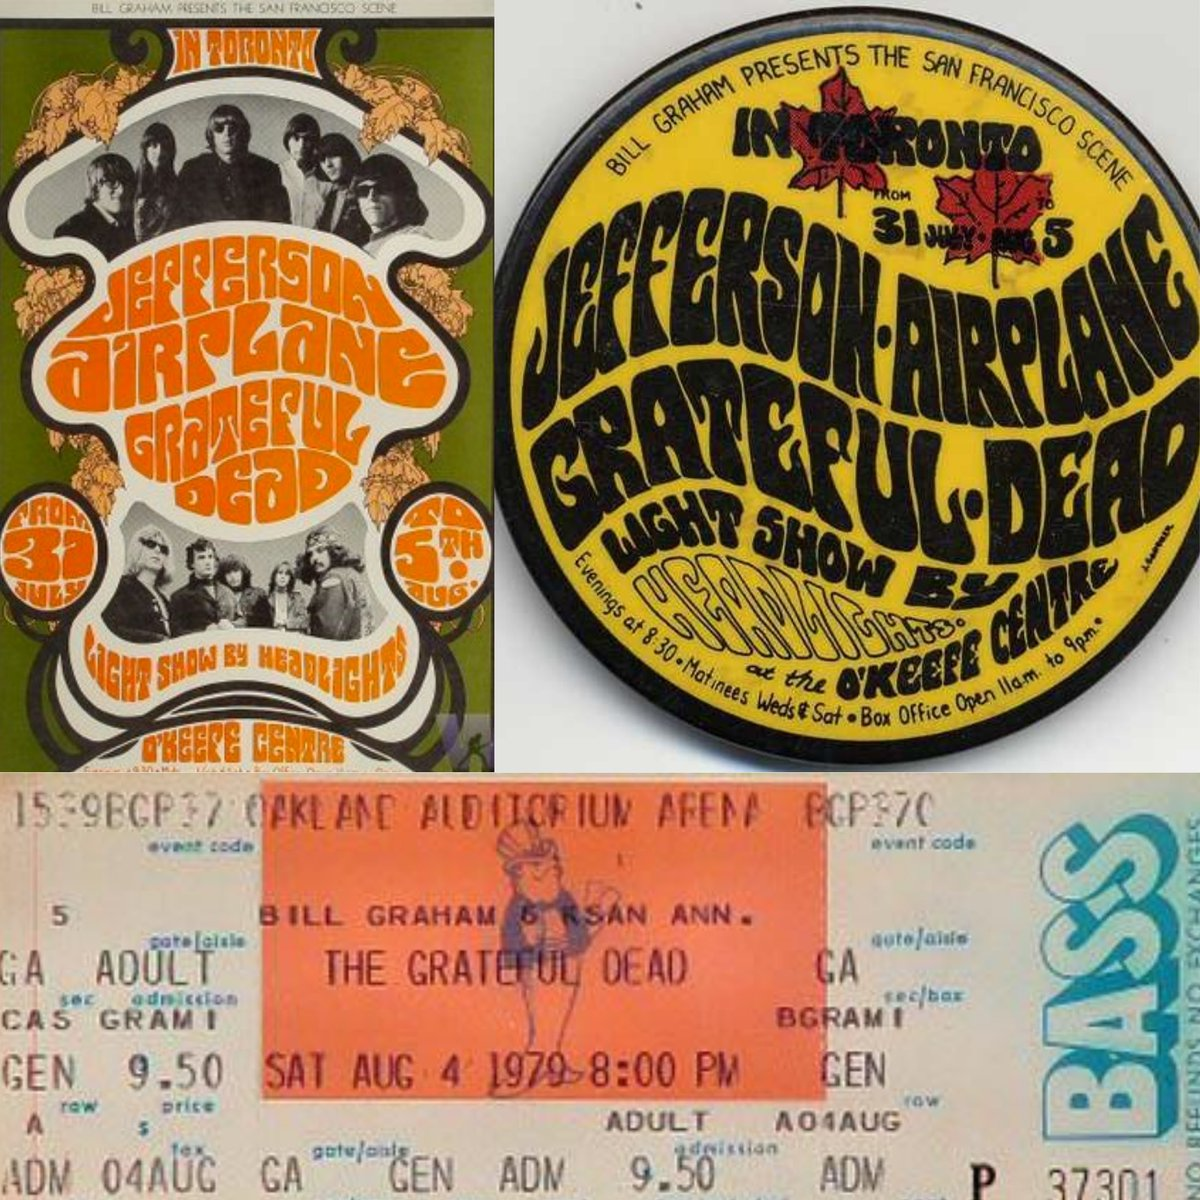 Today we celebrate the live anniversary of 3 @GratefulDead songs. OTD in 1967 New Potato Caboose was debuted at the OKeefe Center in Toronto. OTD in 1979 Althea and Lost Sailor were debuted at the Oakland Auditorium Arena.